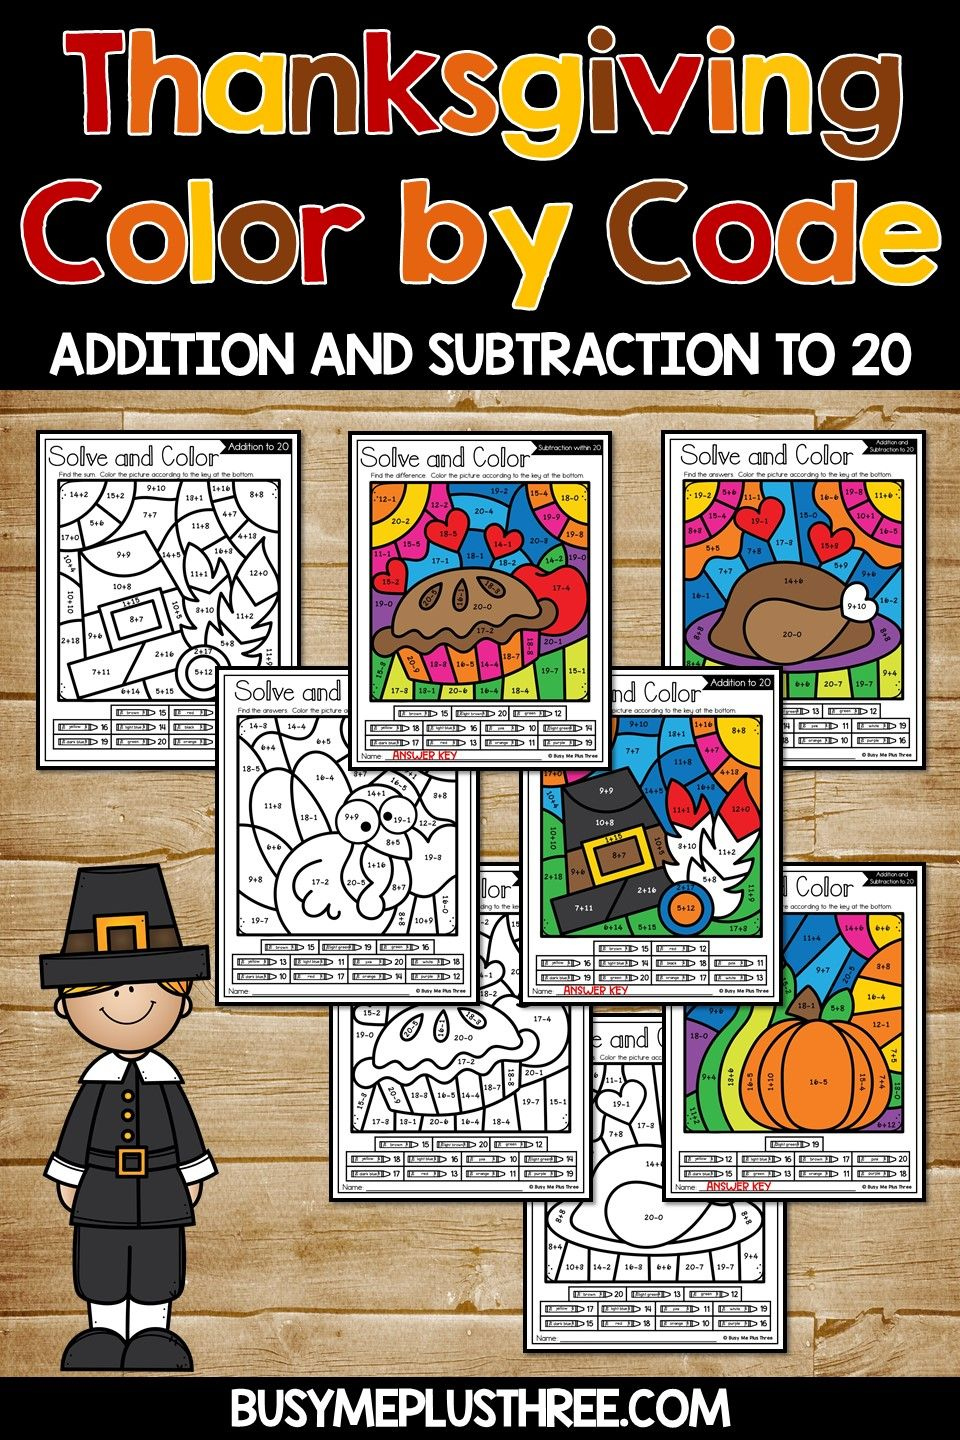 Color by Code Thanksgiving Activities {Addition and